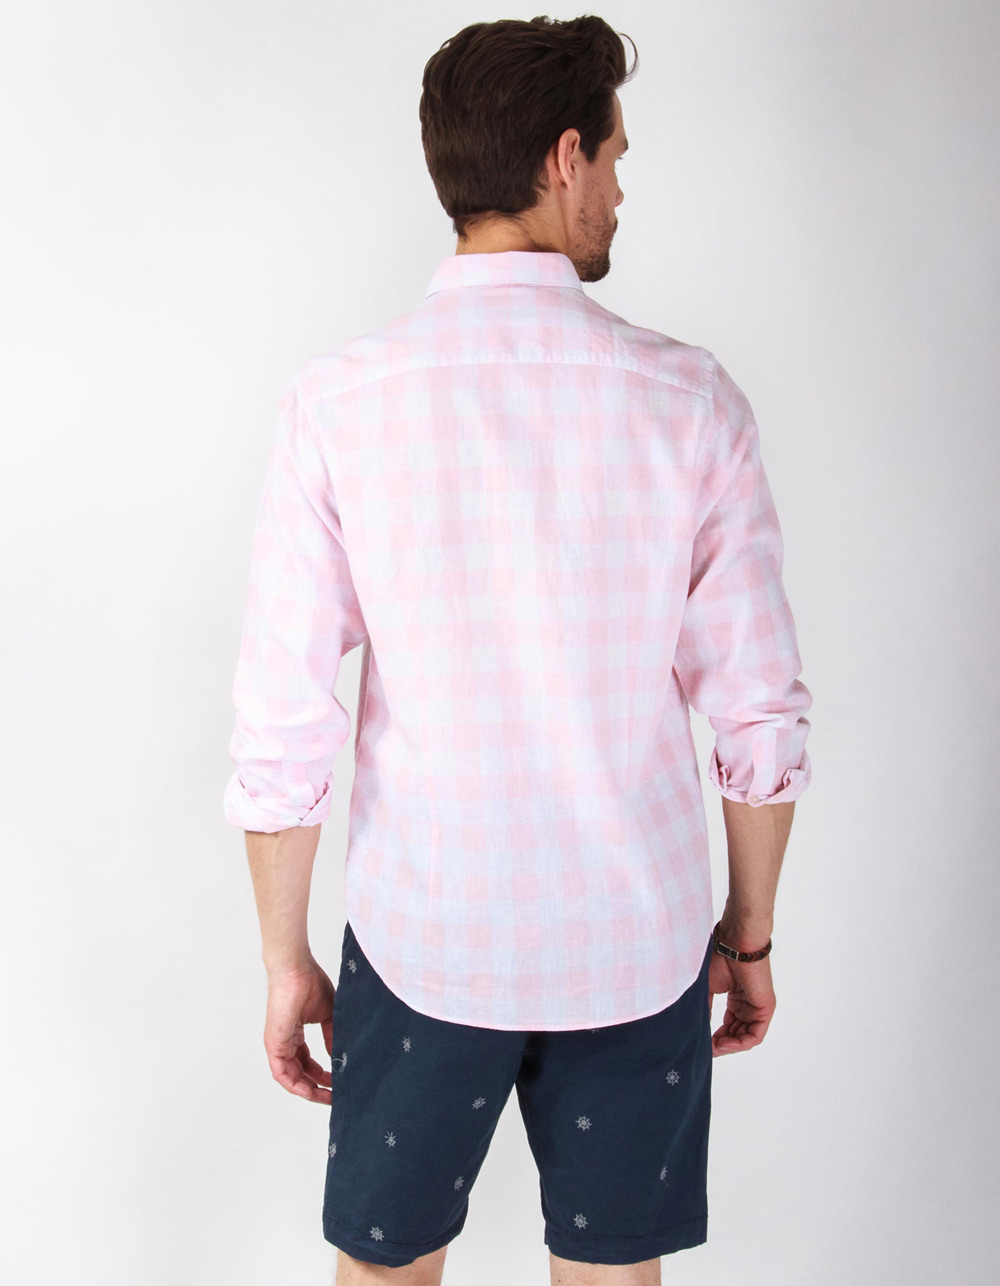 Pink plaid shirt - Backside